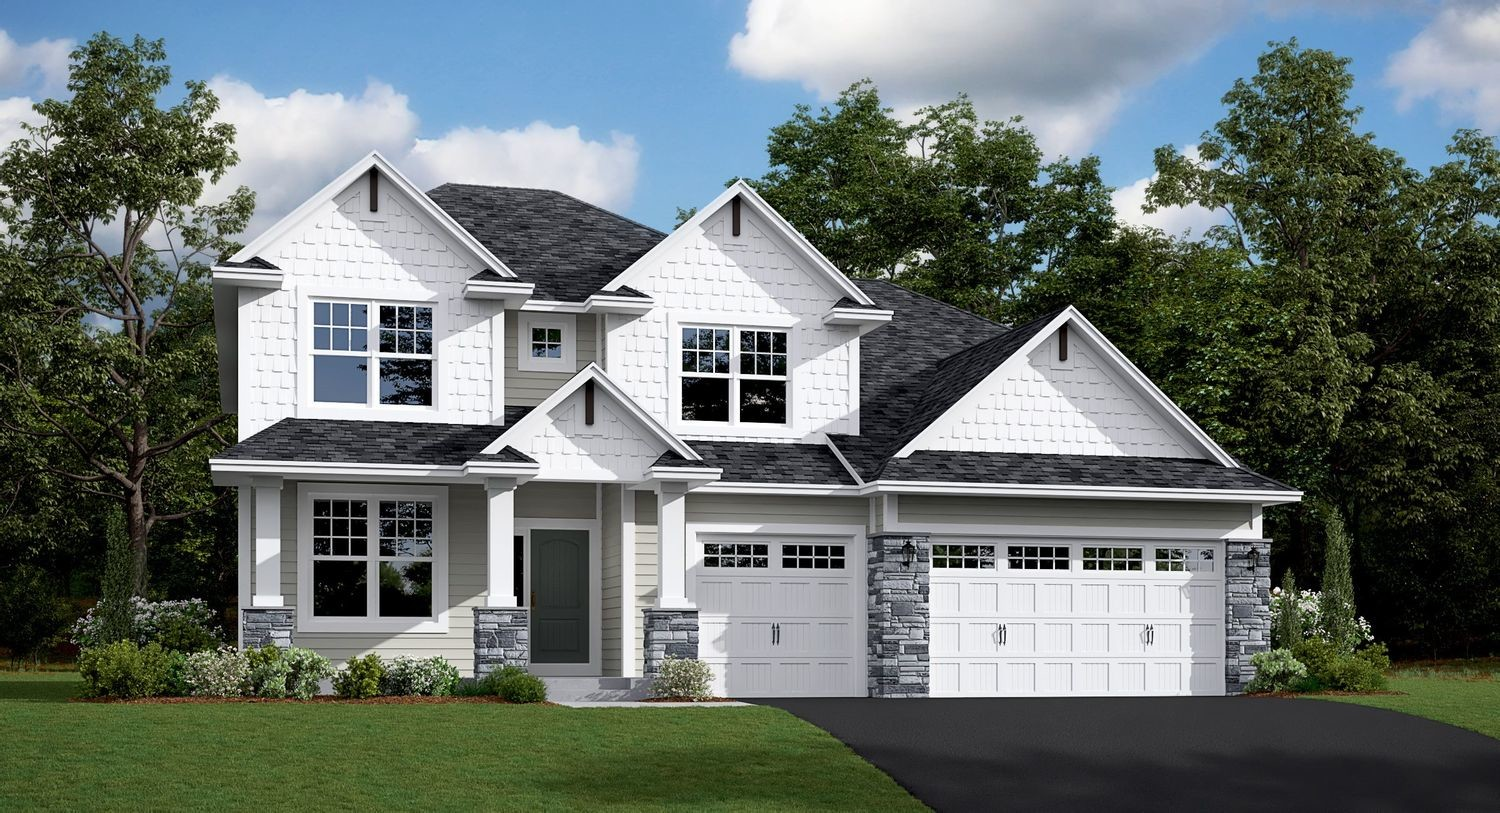 Ready To Build Home In The Park - Landmark Collection Community